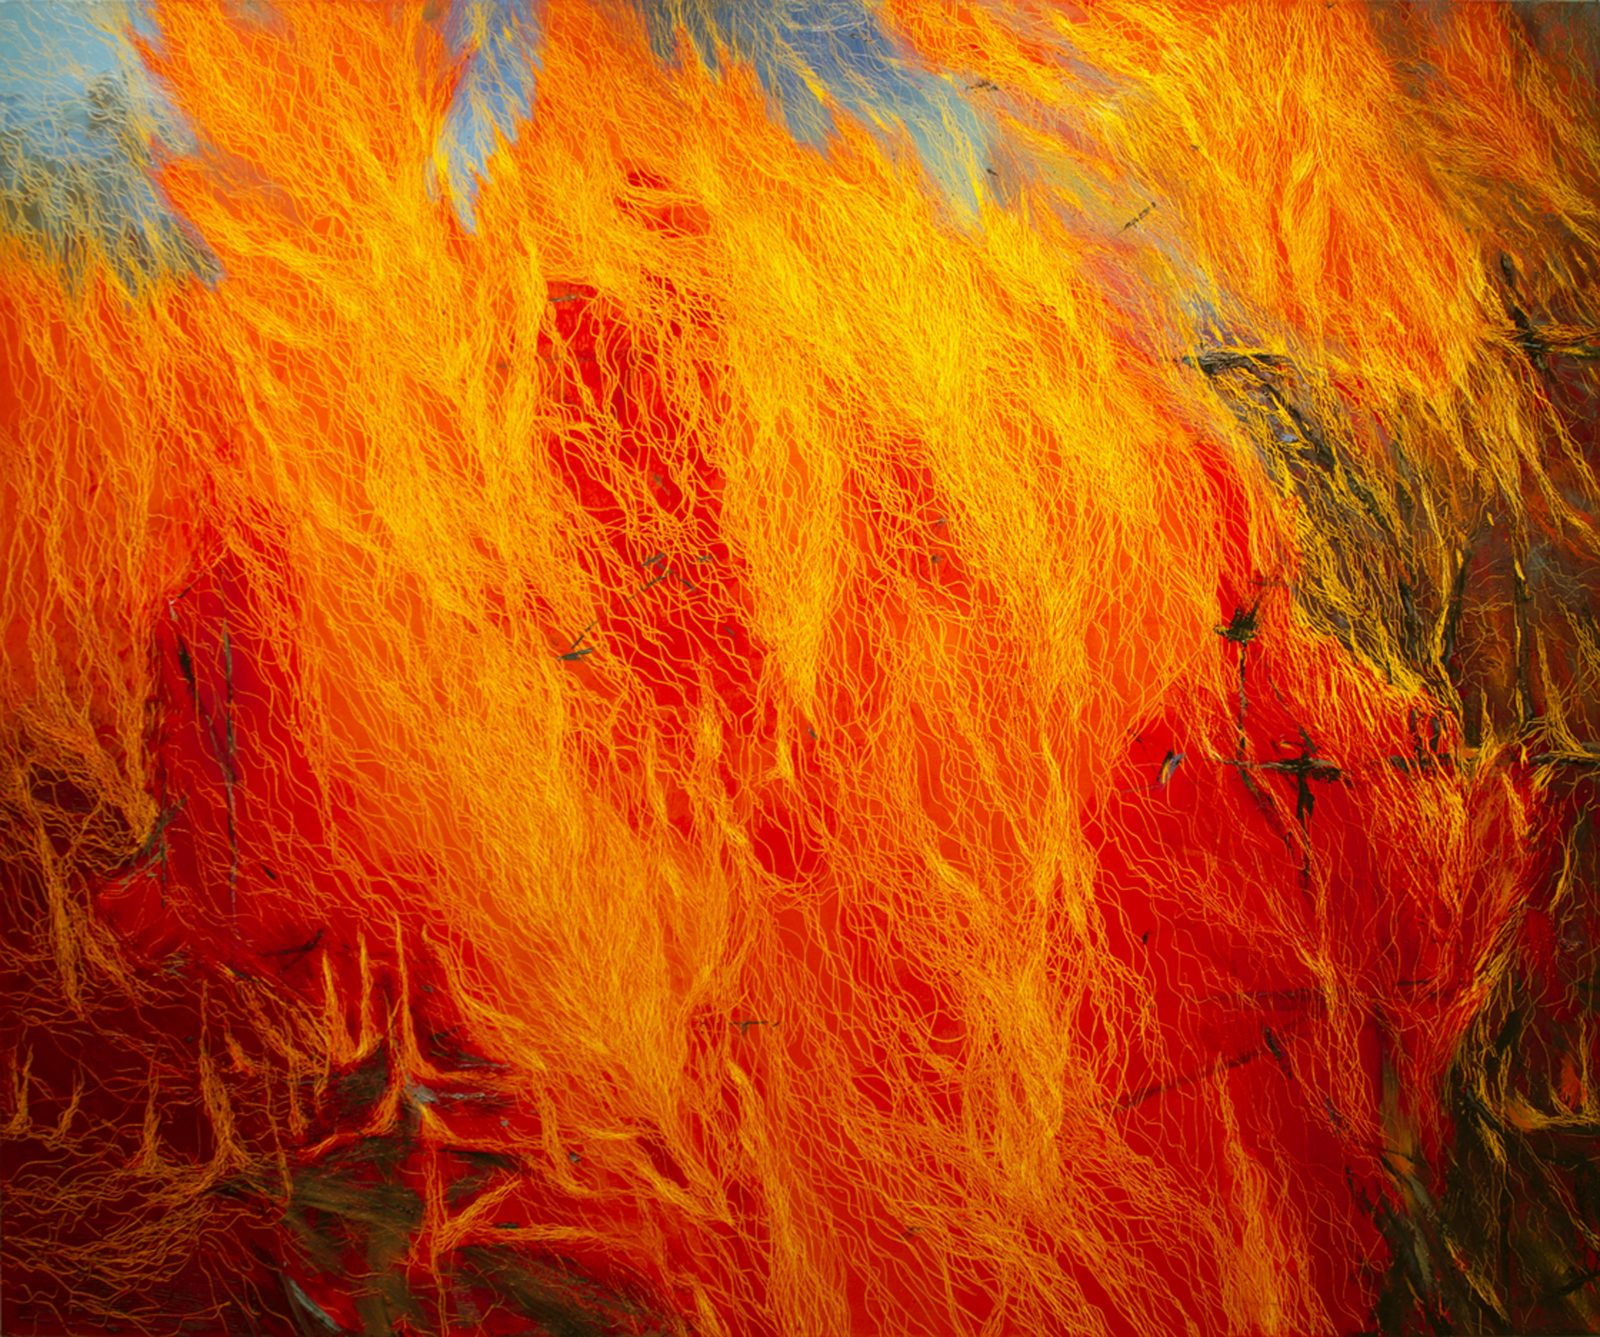 Fire XI, 60 x 72, oil on canvas, 2012